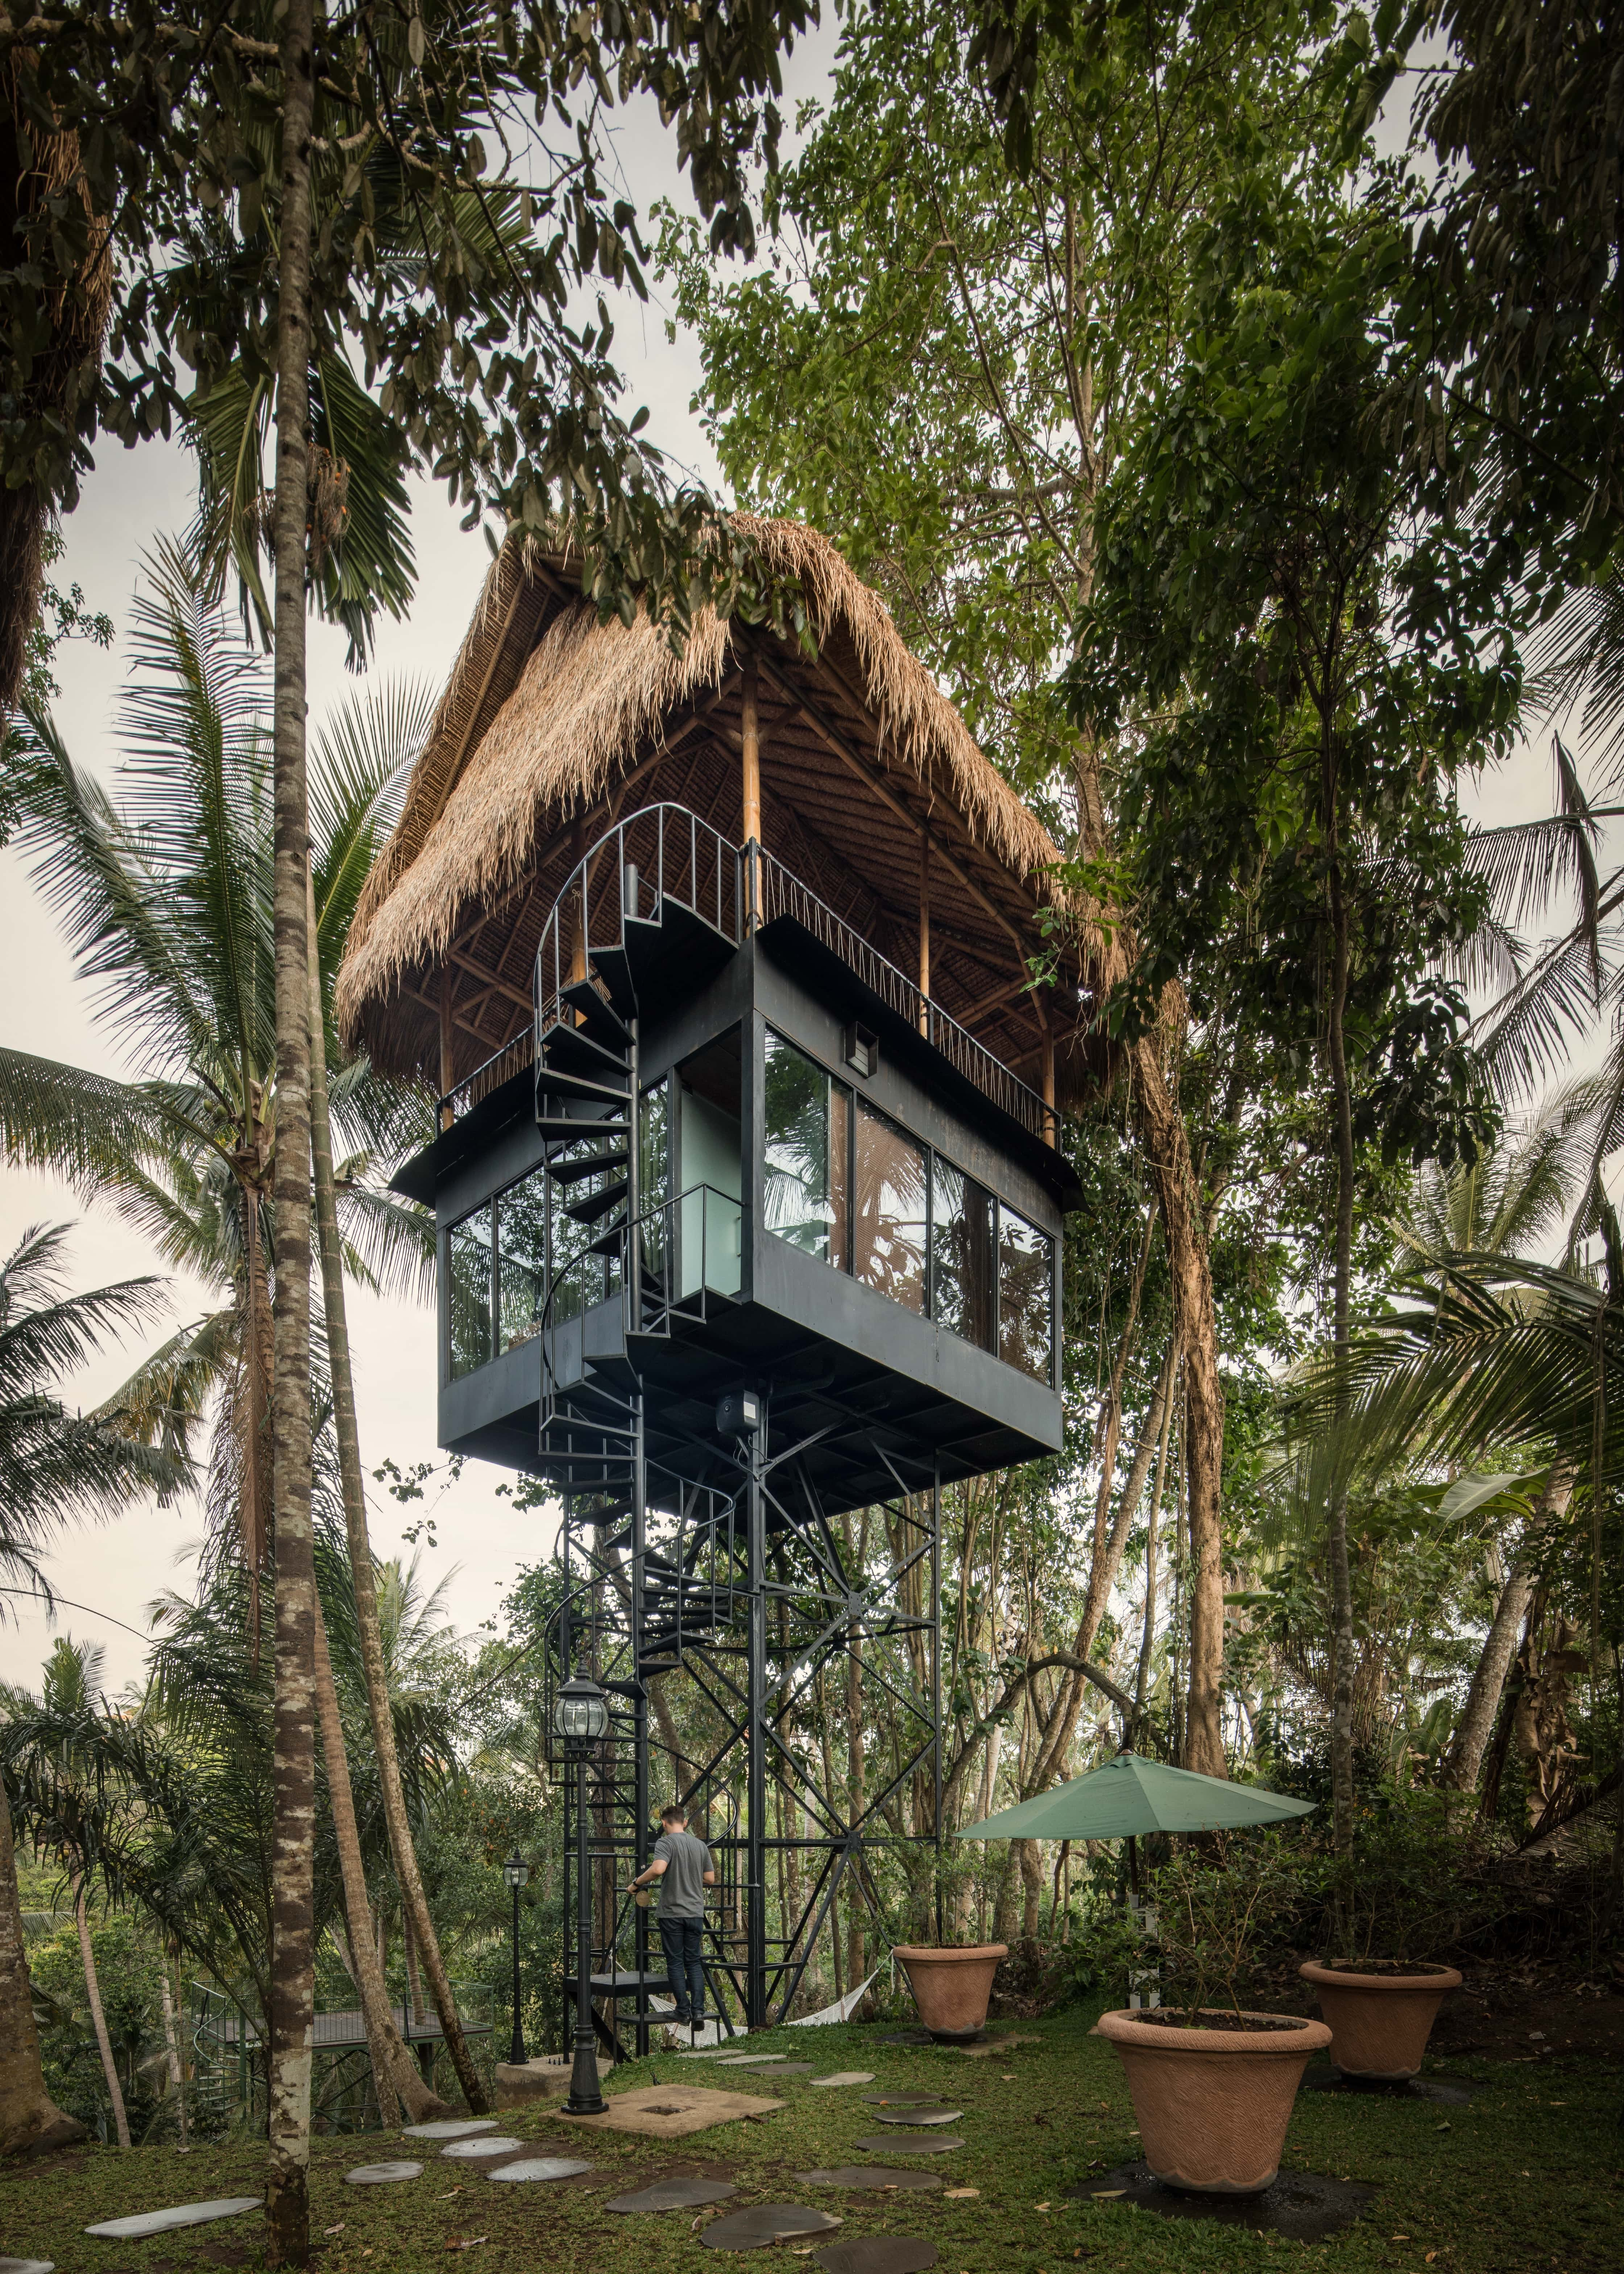 This Bali Based Treetop Hotel Gives Visitors An Off The Ground Experience News Archinect